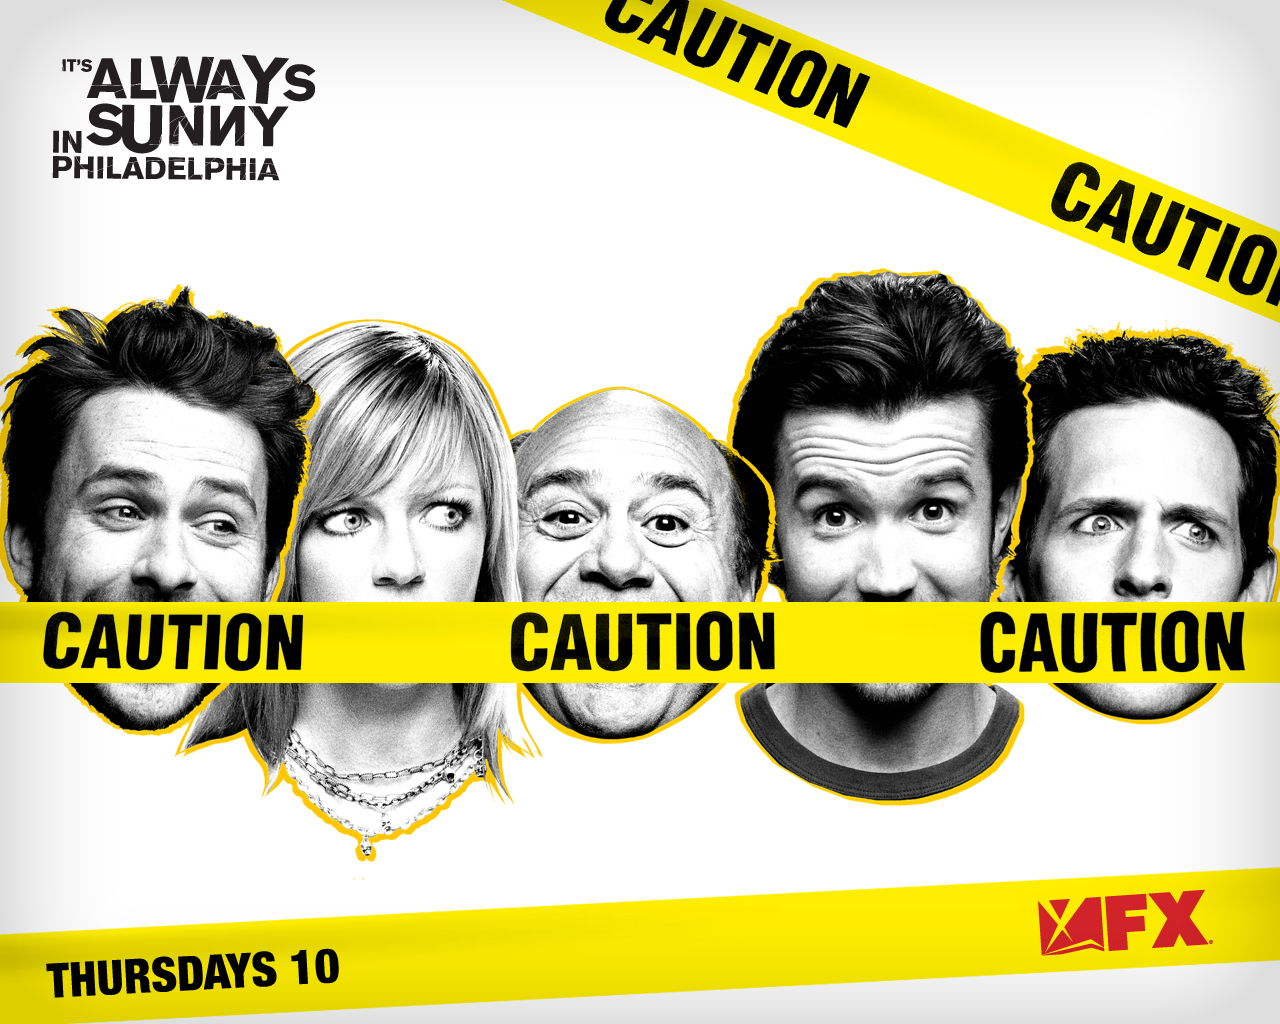 http://3.bp.blogspot.com/-3E8LvTwCOGk/T309s08CGZI/AAAAAAAAAJ4/Gw80DpmuJL8/s1600/tv_it_s_always_sunny_in_philadelphia01.jpeg